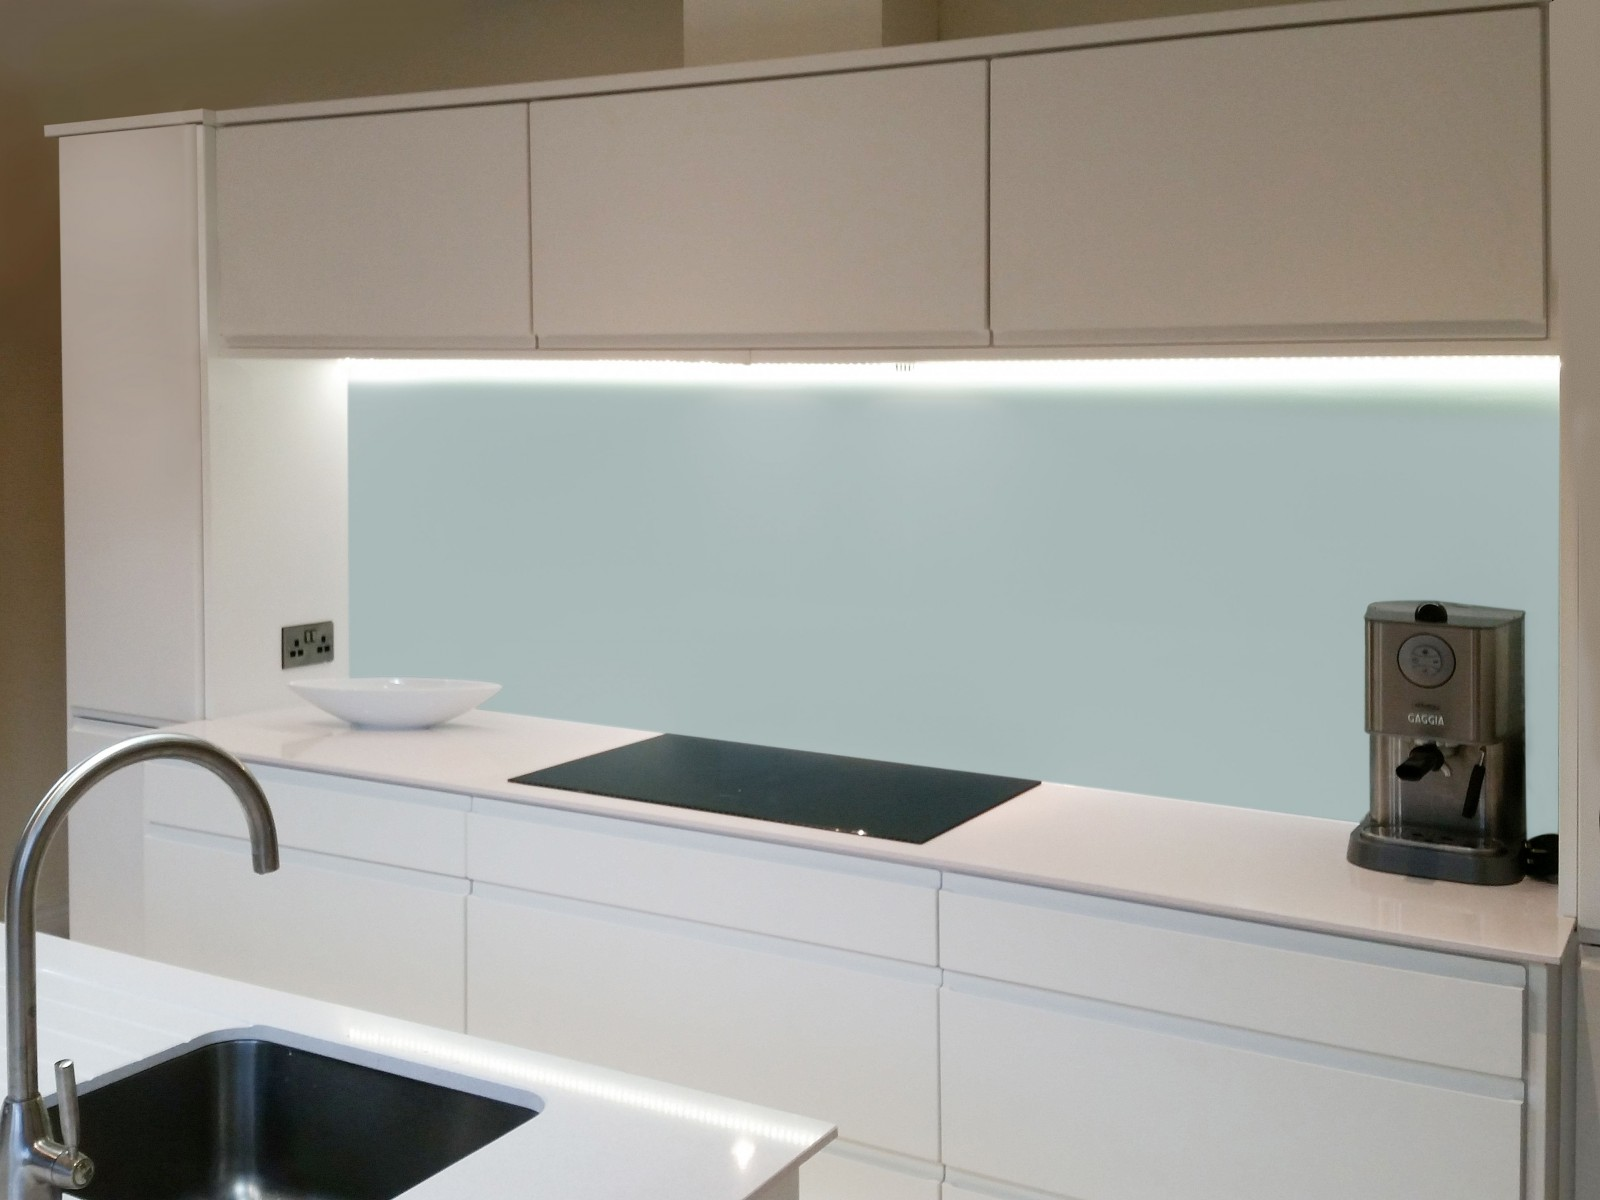 Frosted Glass Splashbacks Uk - Glass Designs